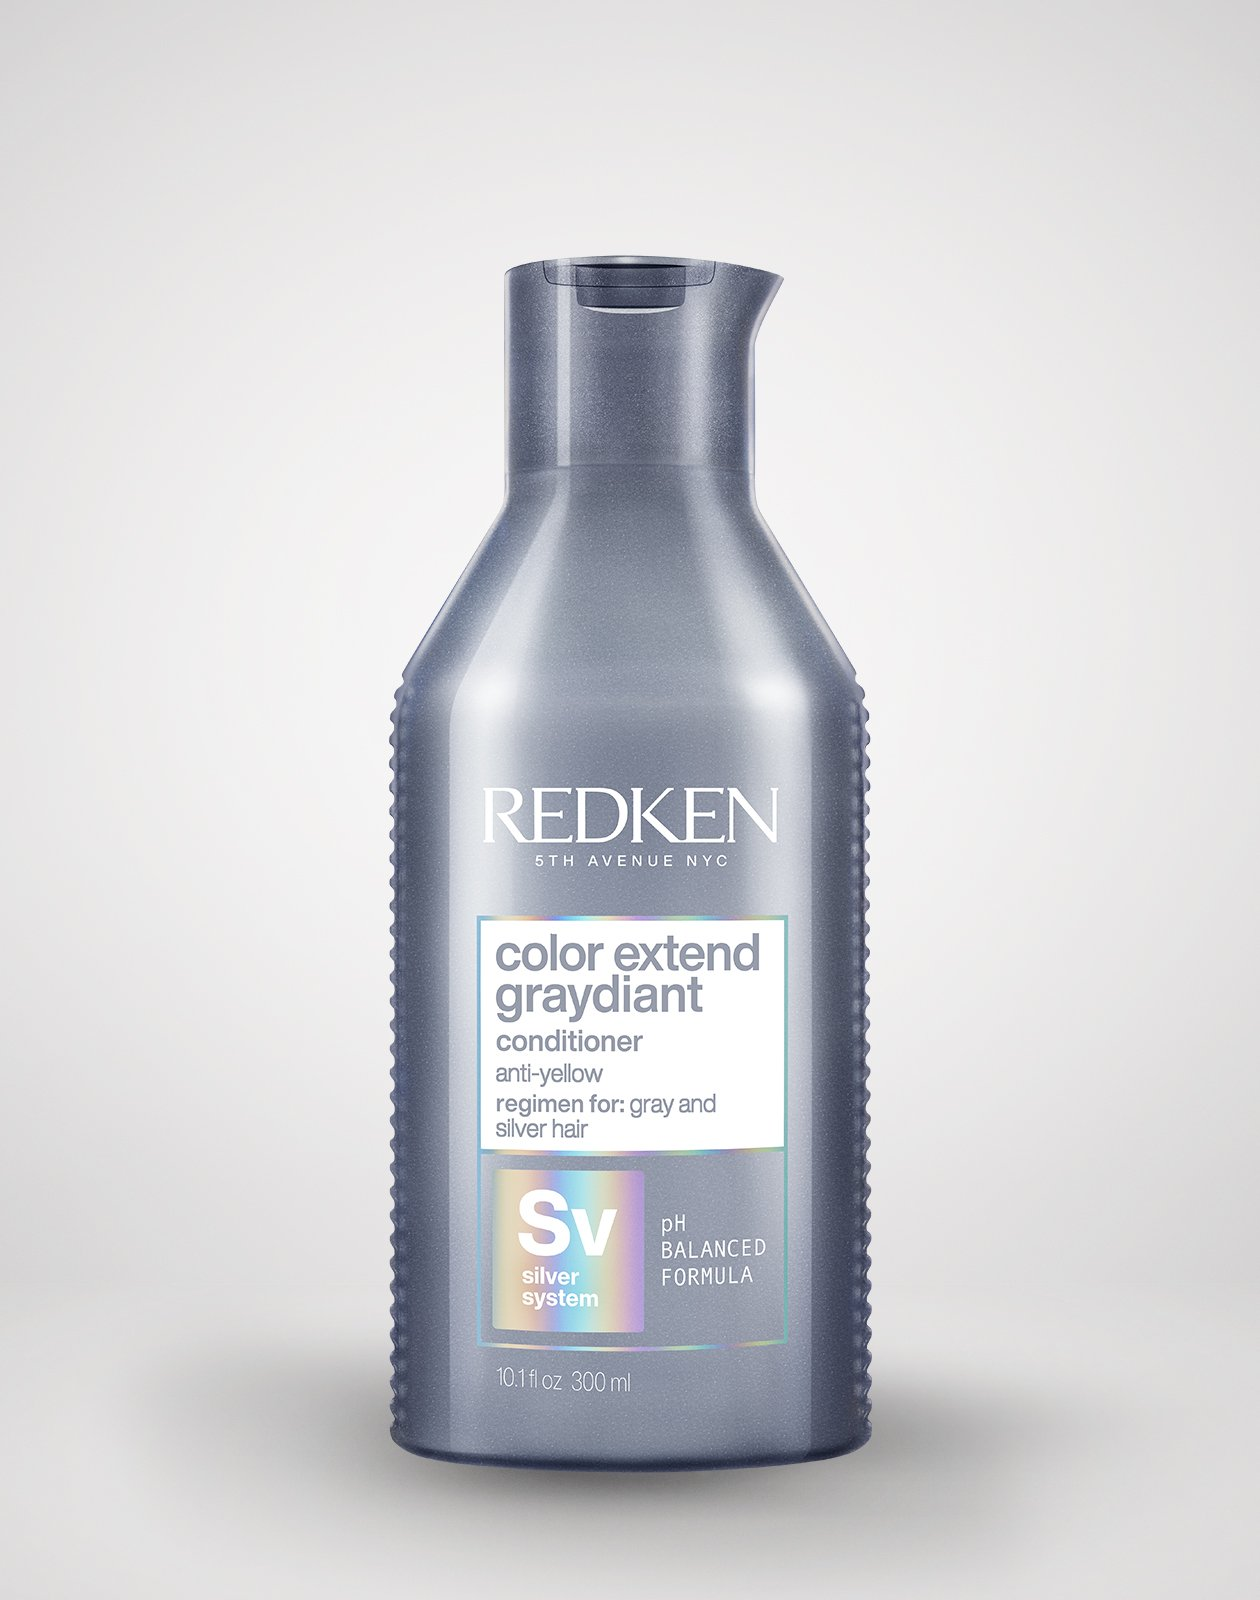 Redken 2018 Color Extend Graydiant Product Shot 1260x1600 Conditioner LightGray.jpg